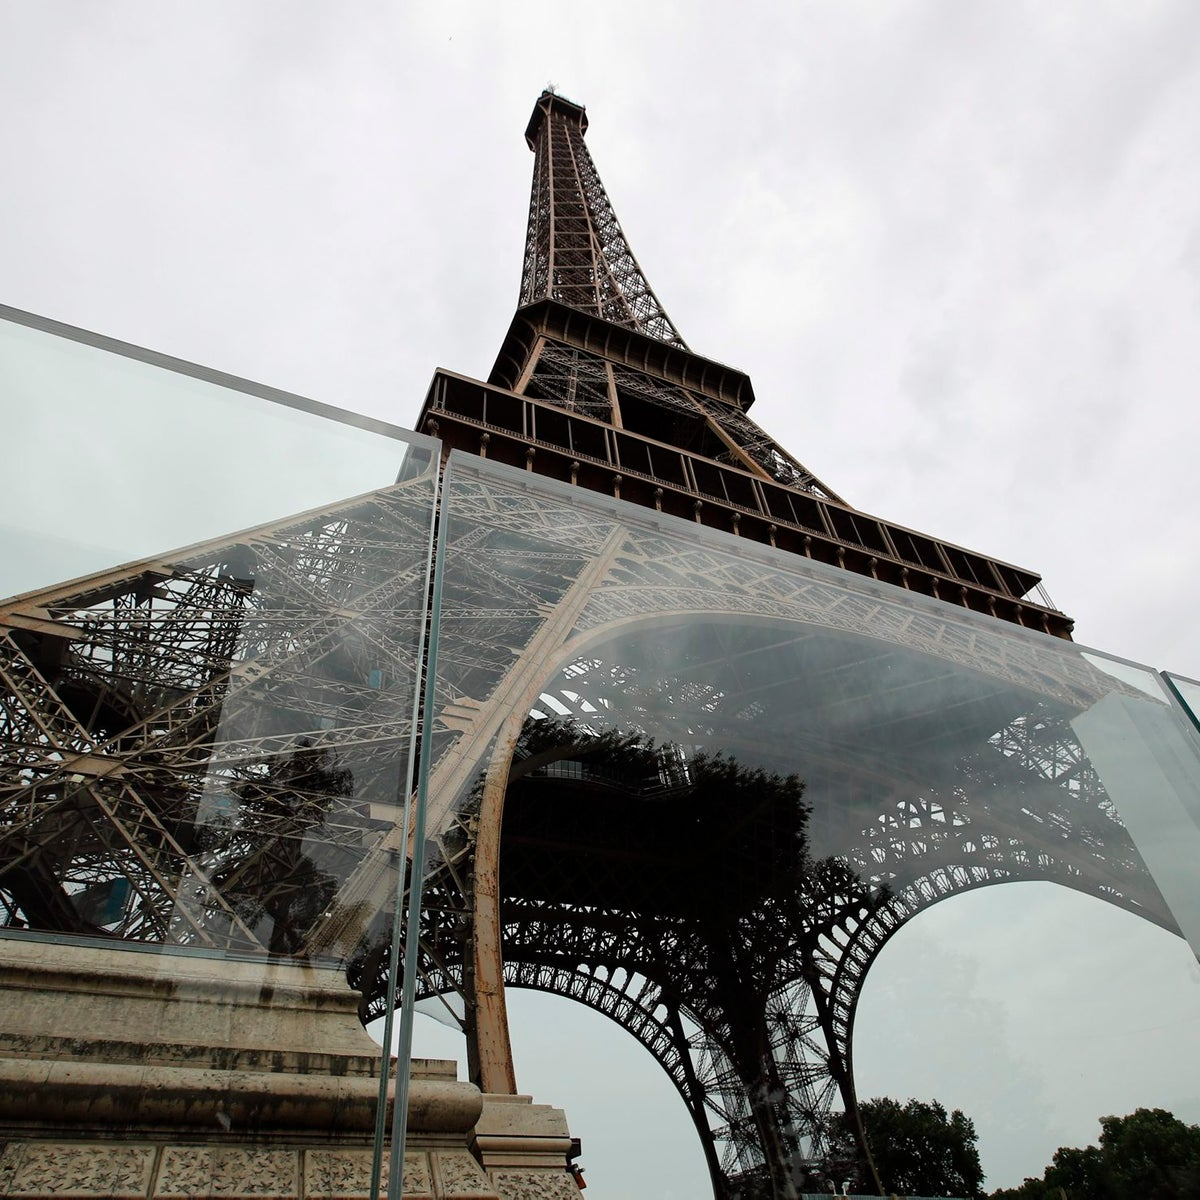 View of a new security bulletproof glass barrier under construction around the Eiffel Tower in Paris, France, Thursday, June 14, 2018.